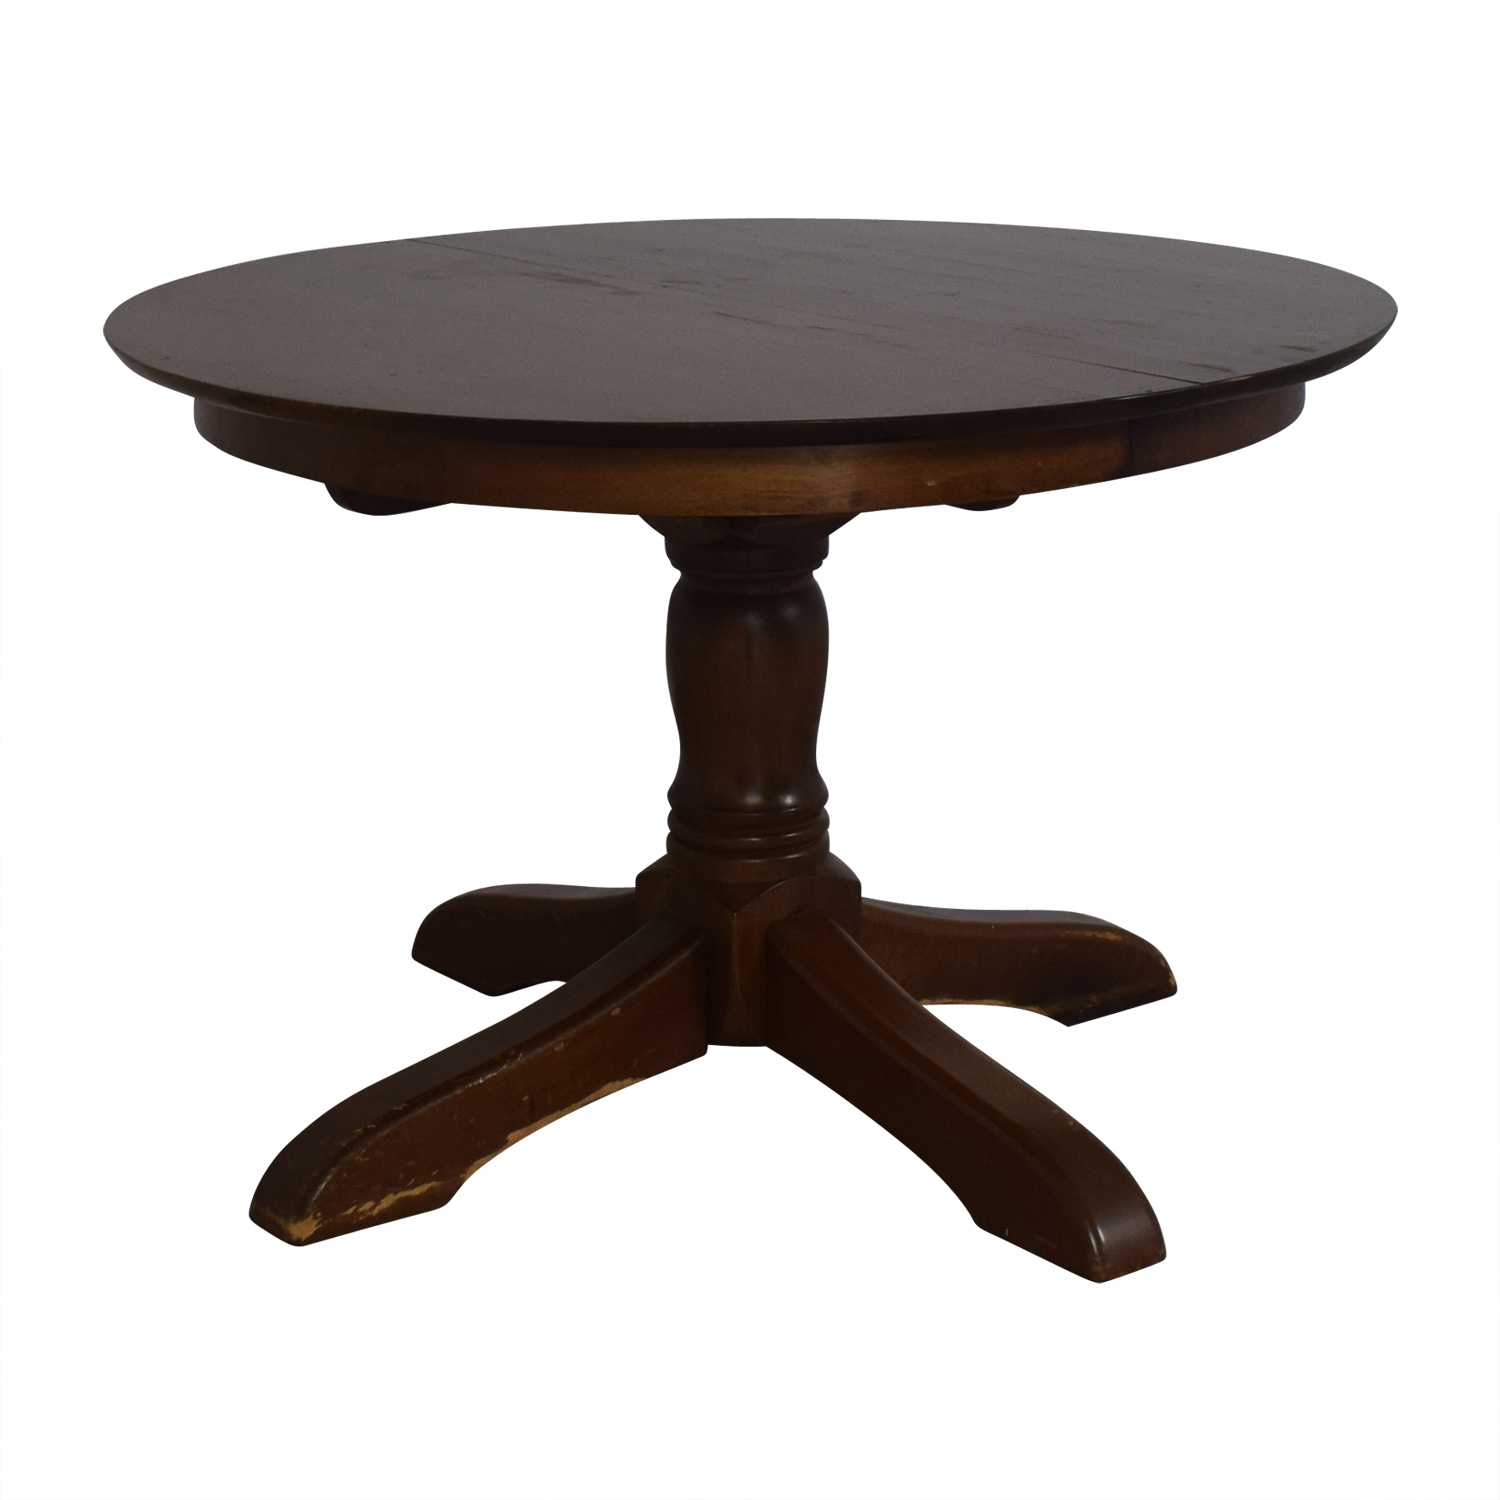 Pottery Barn Pottery Barn Extendable Round Dining Table price